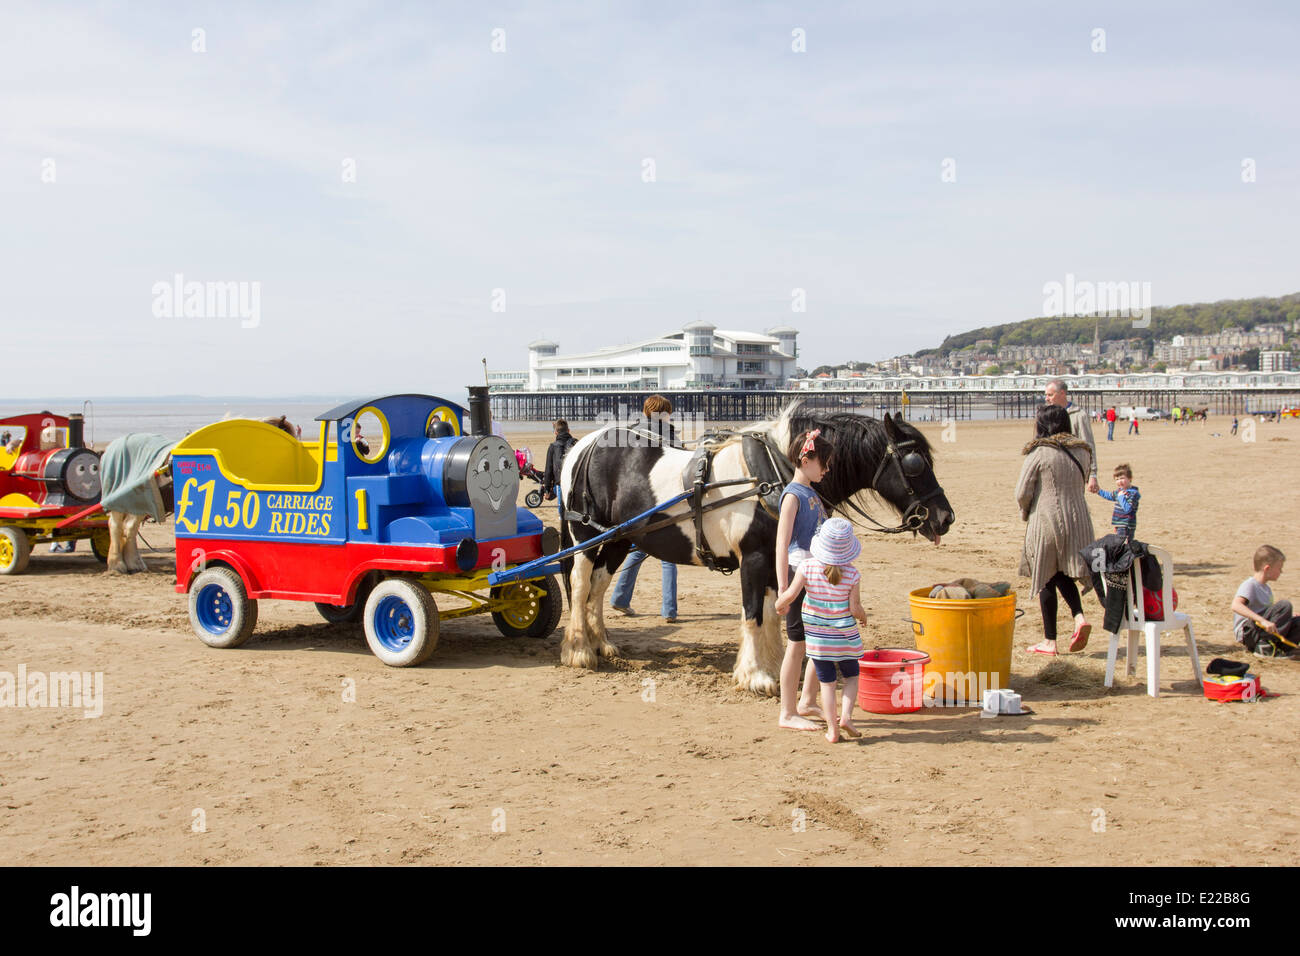 Horses pulling Thomas the Tank Engine carts on the beach in